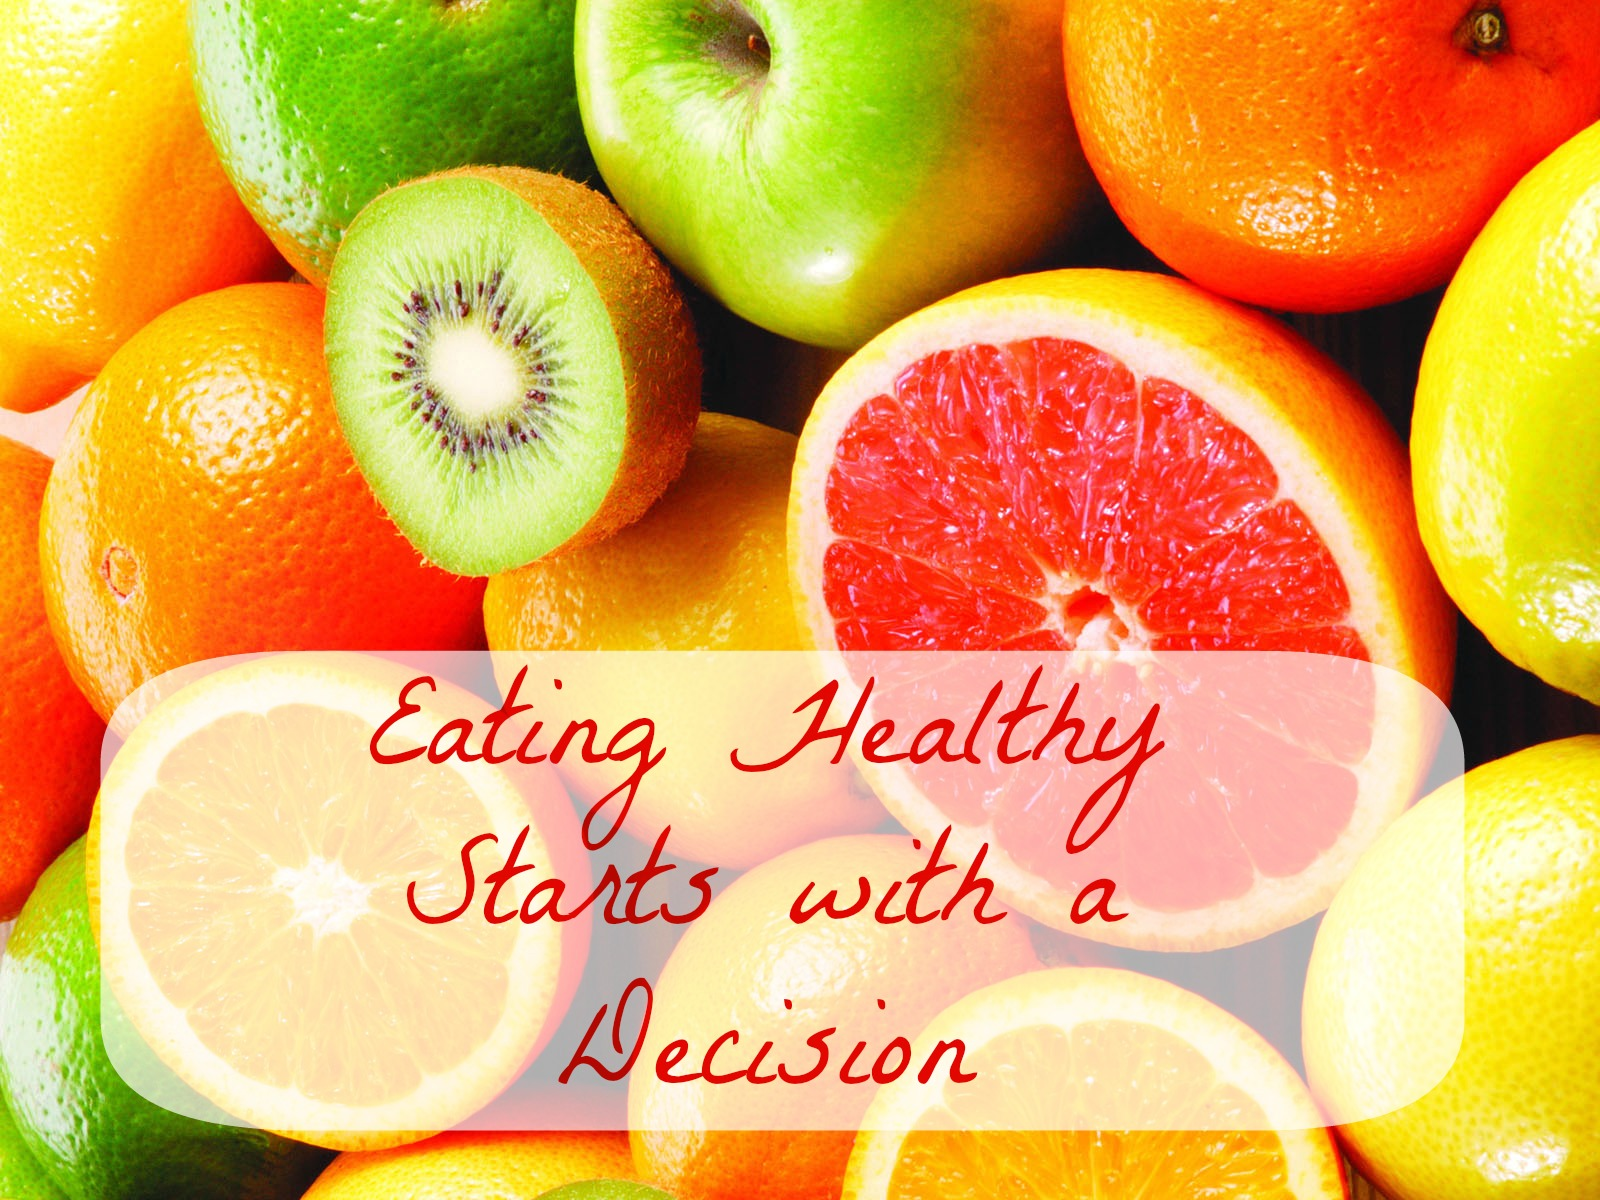 healthy eating The key takeaway is that following a healthy diet can help us maintain healthy  cells and avoid certain chronic diseases, said lead author.